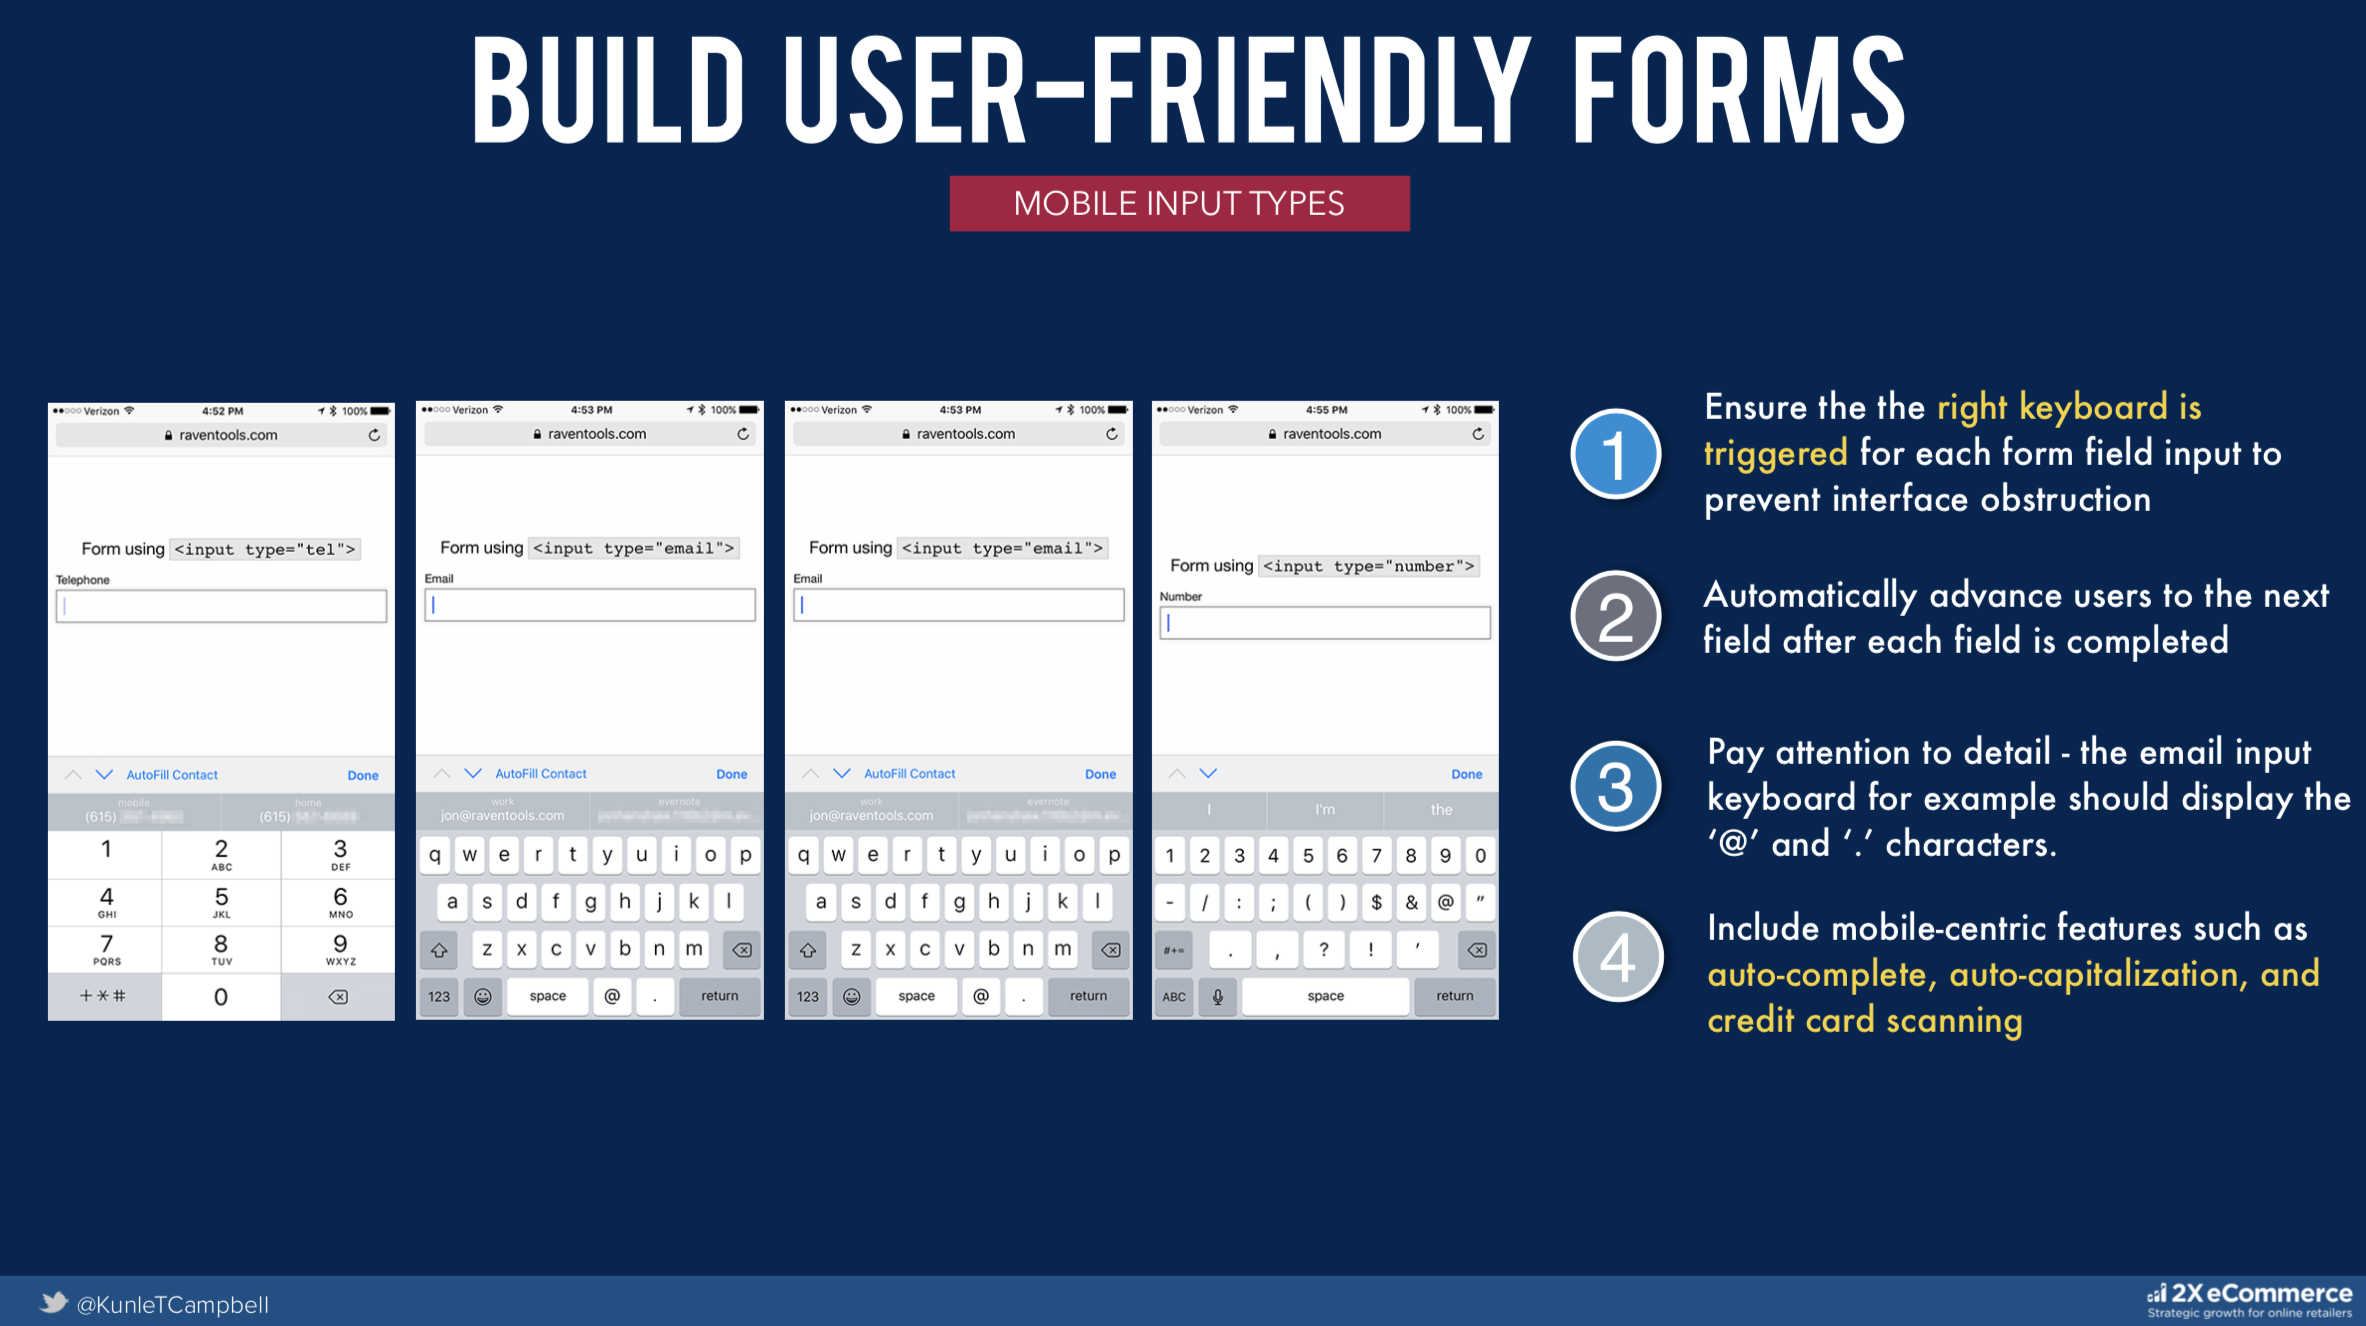 Facebook notes on building user-friendly forms